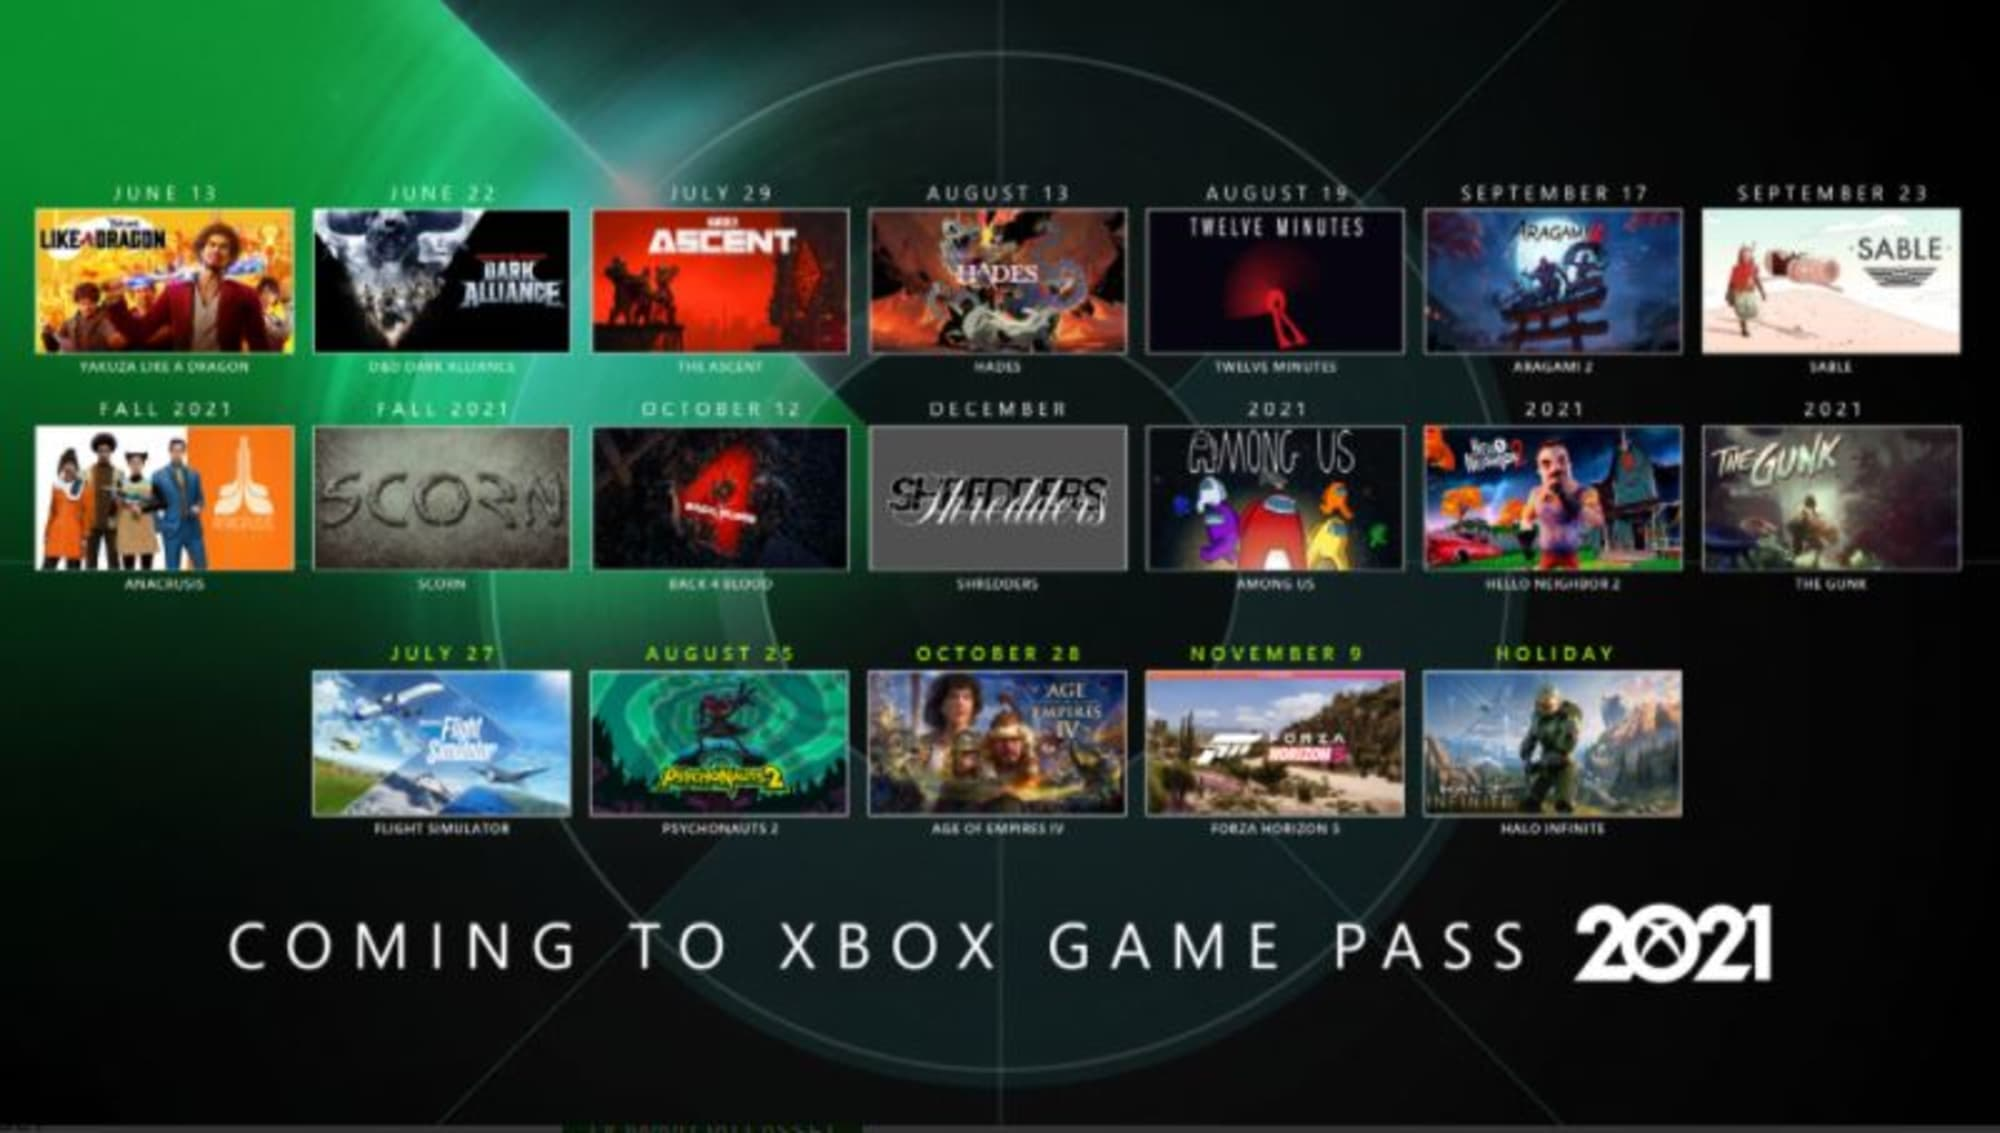 13 more titles coming to Xbox Game Pass over the next two weeks